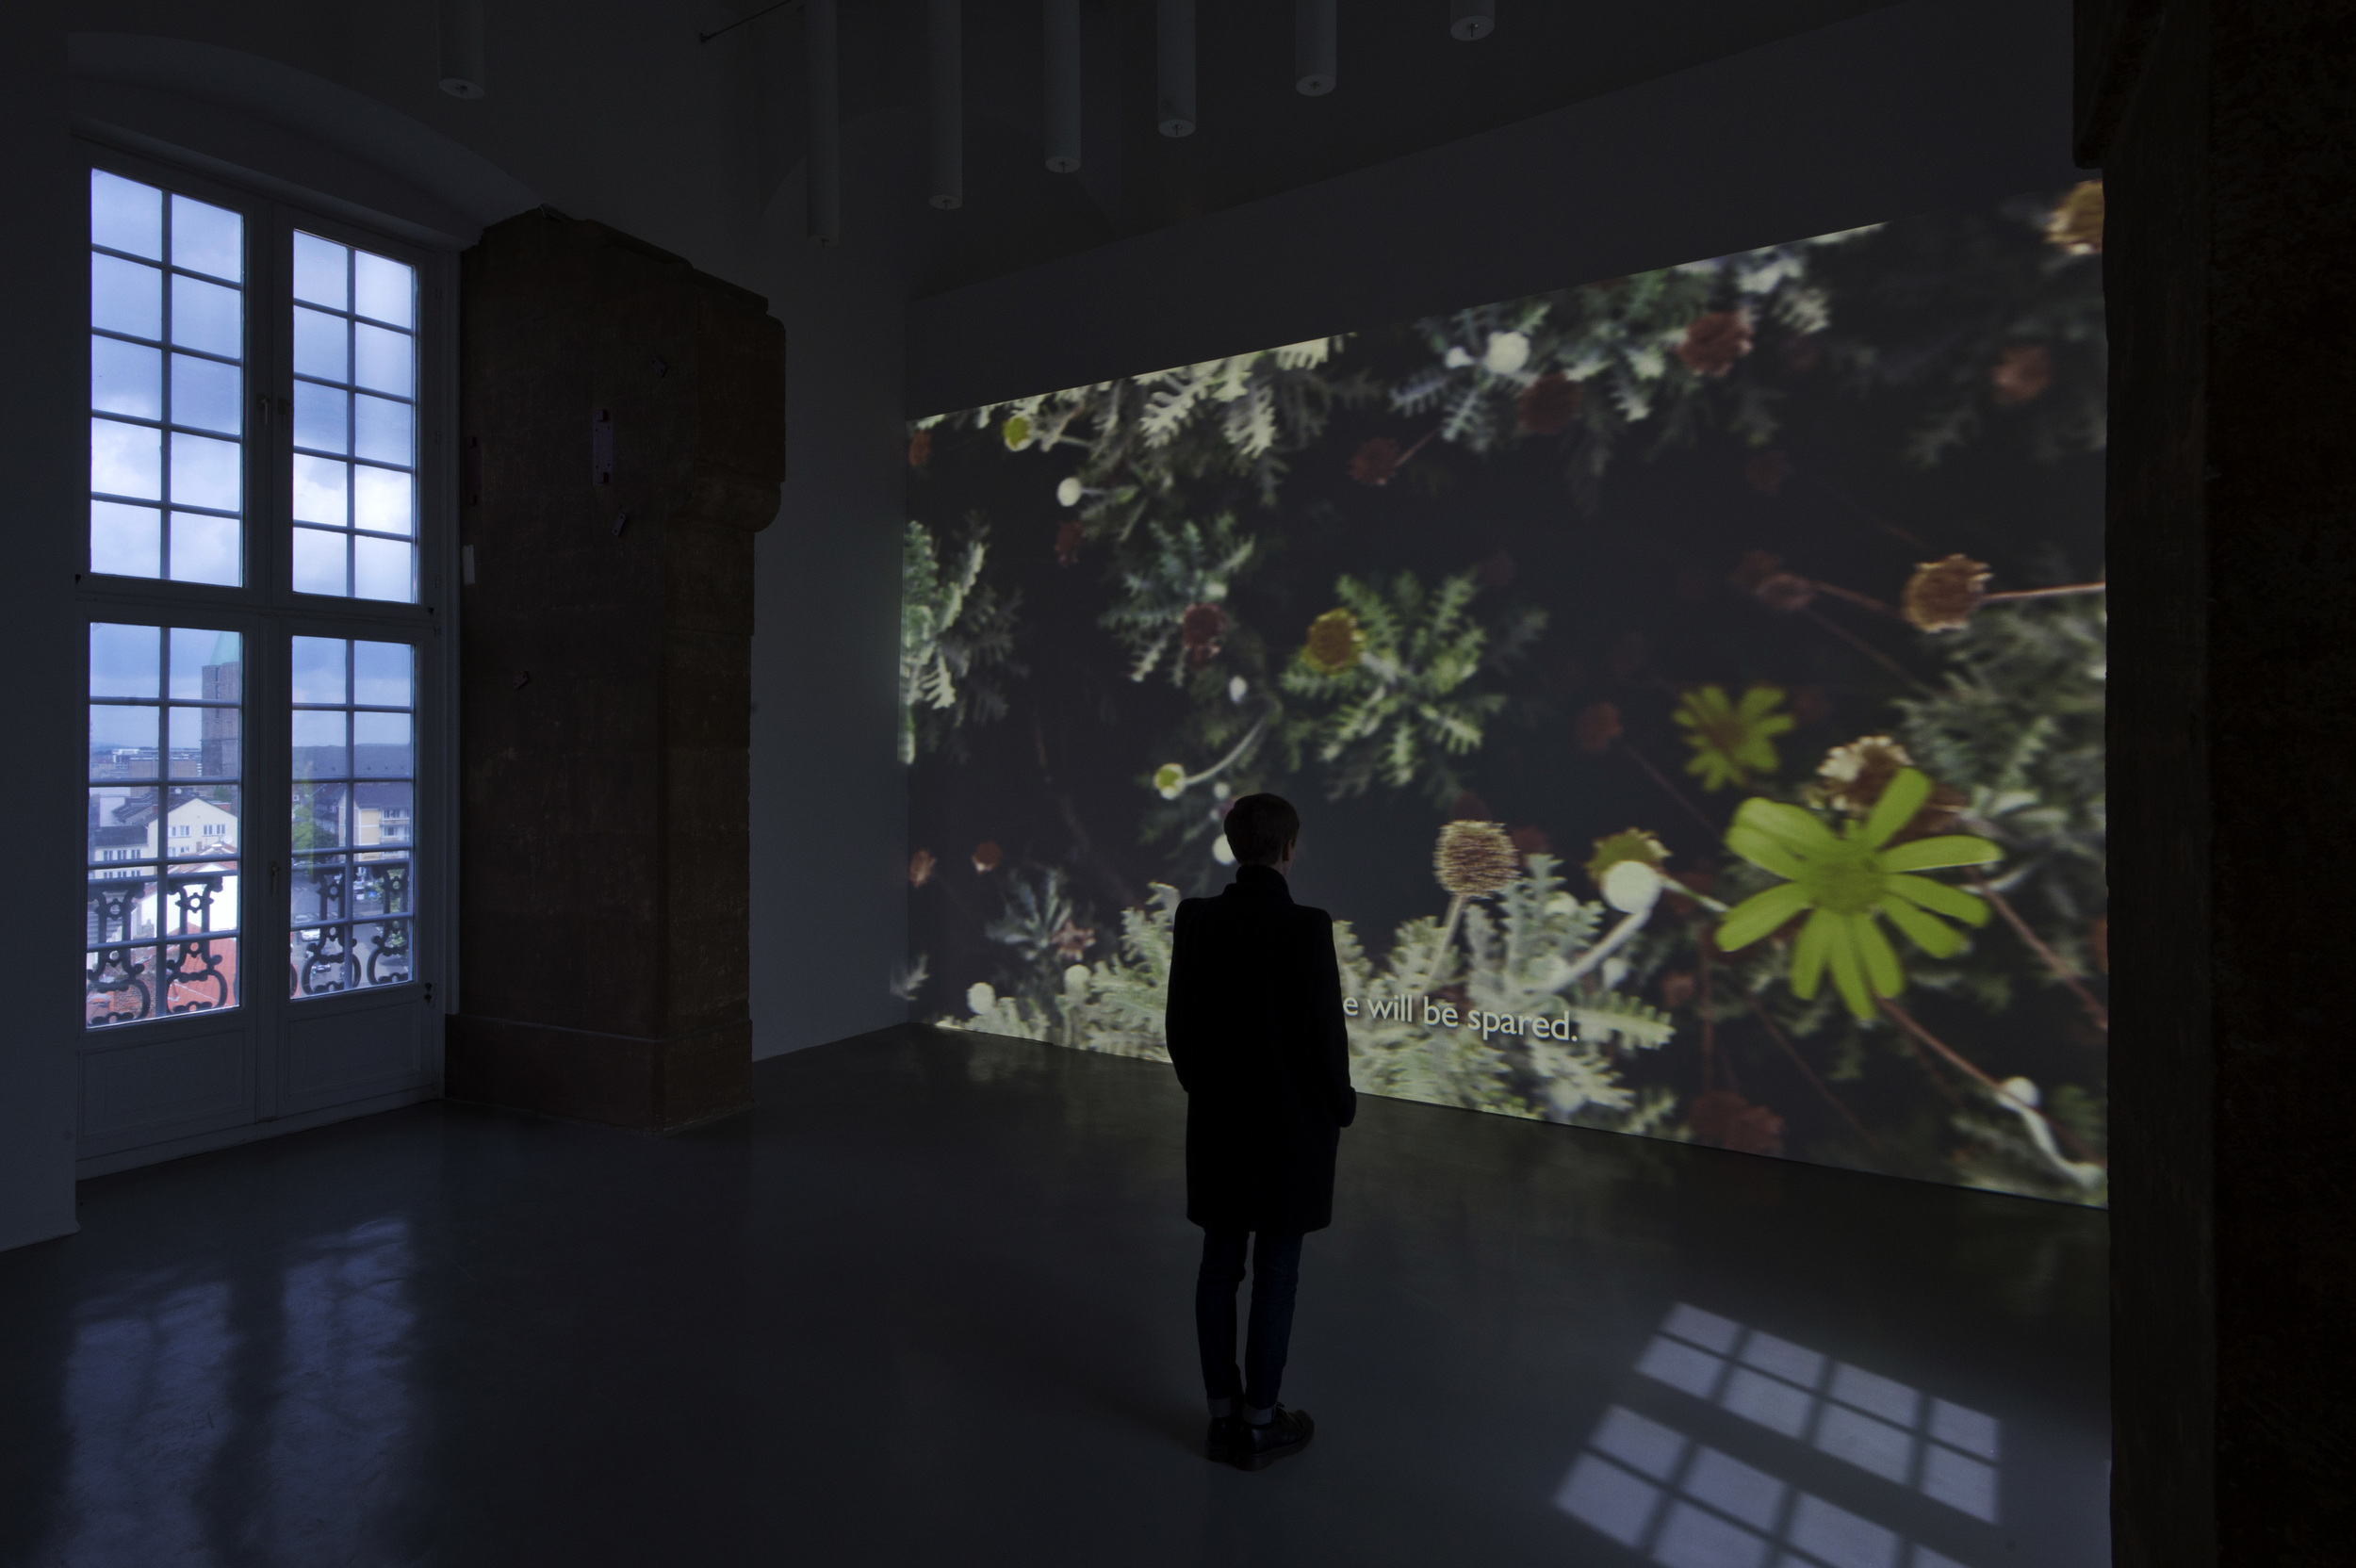 Shooting Stars Remind Me of Eavesdroppers, Installation shot from Night of Counting the Years, Fridericianum.© Nils Klinger